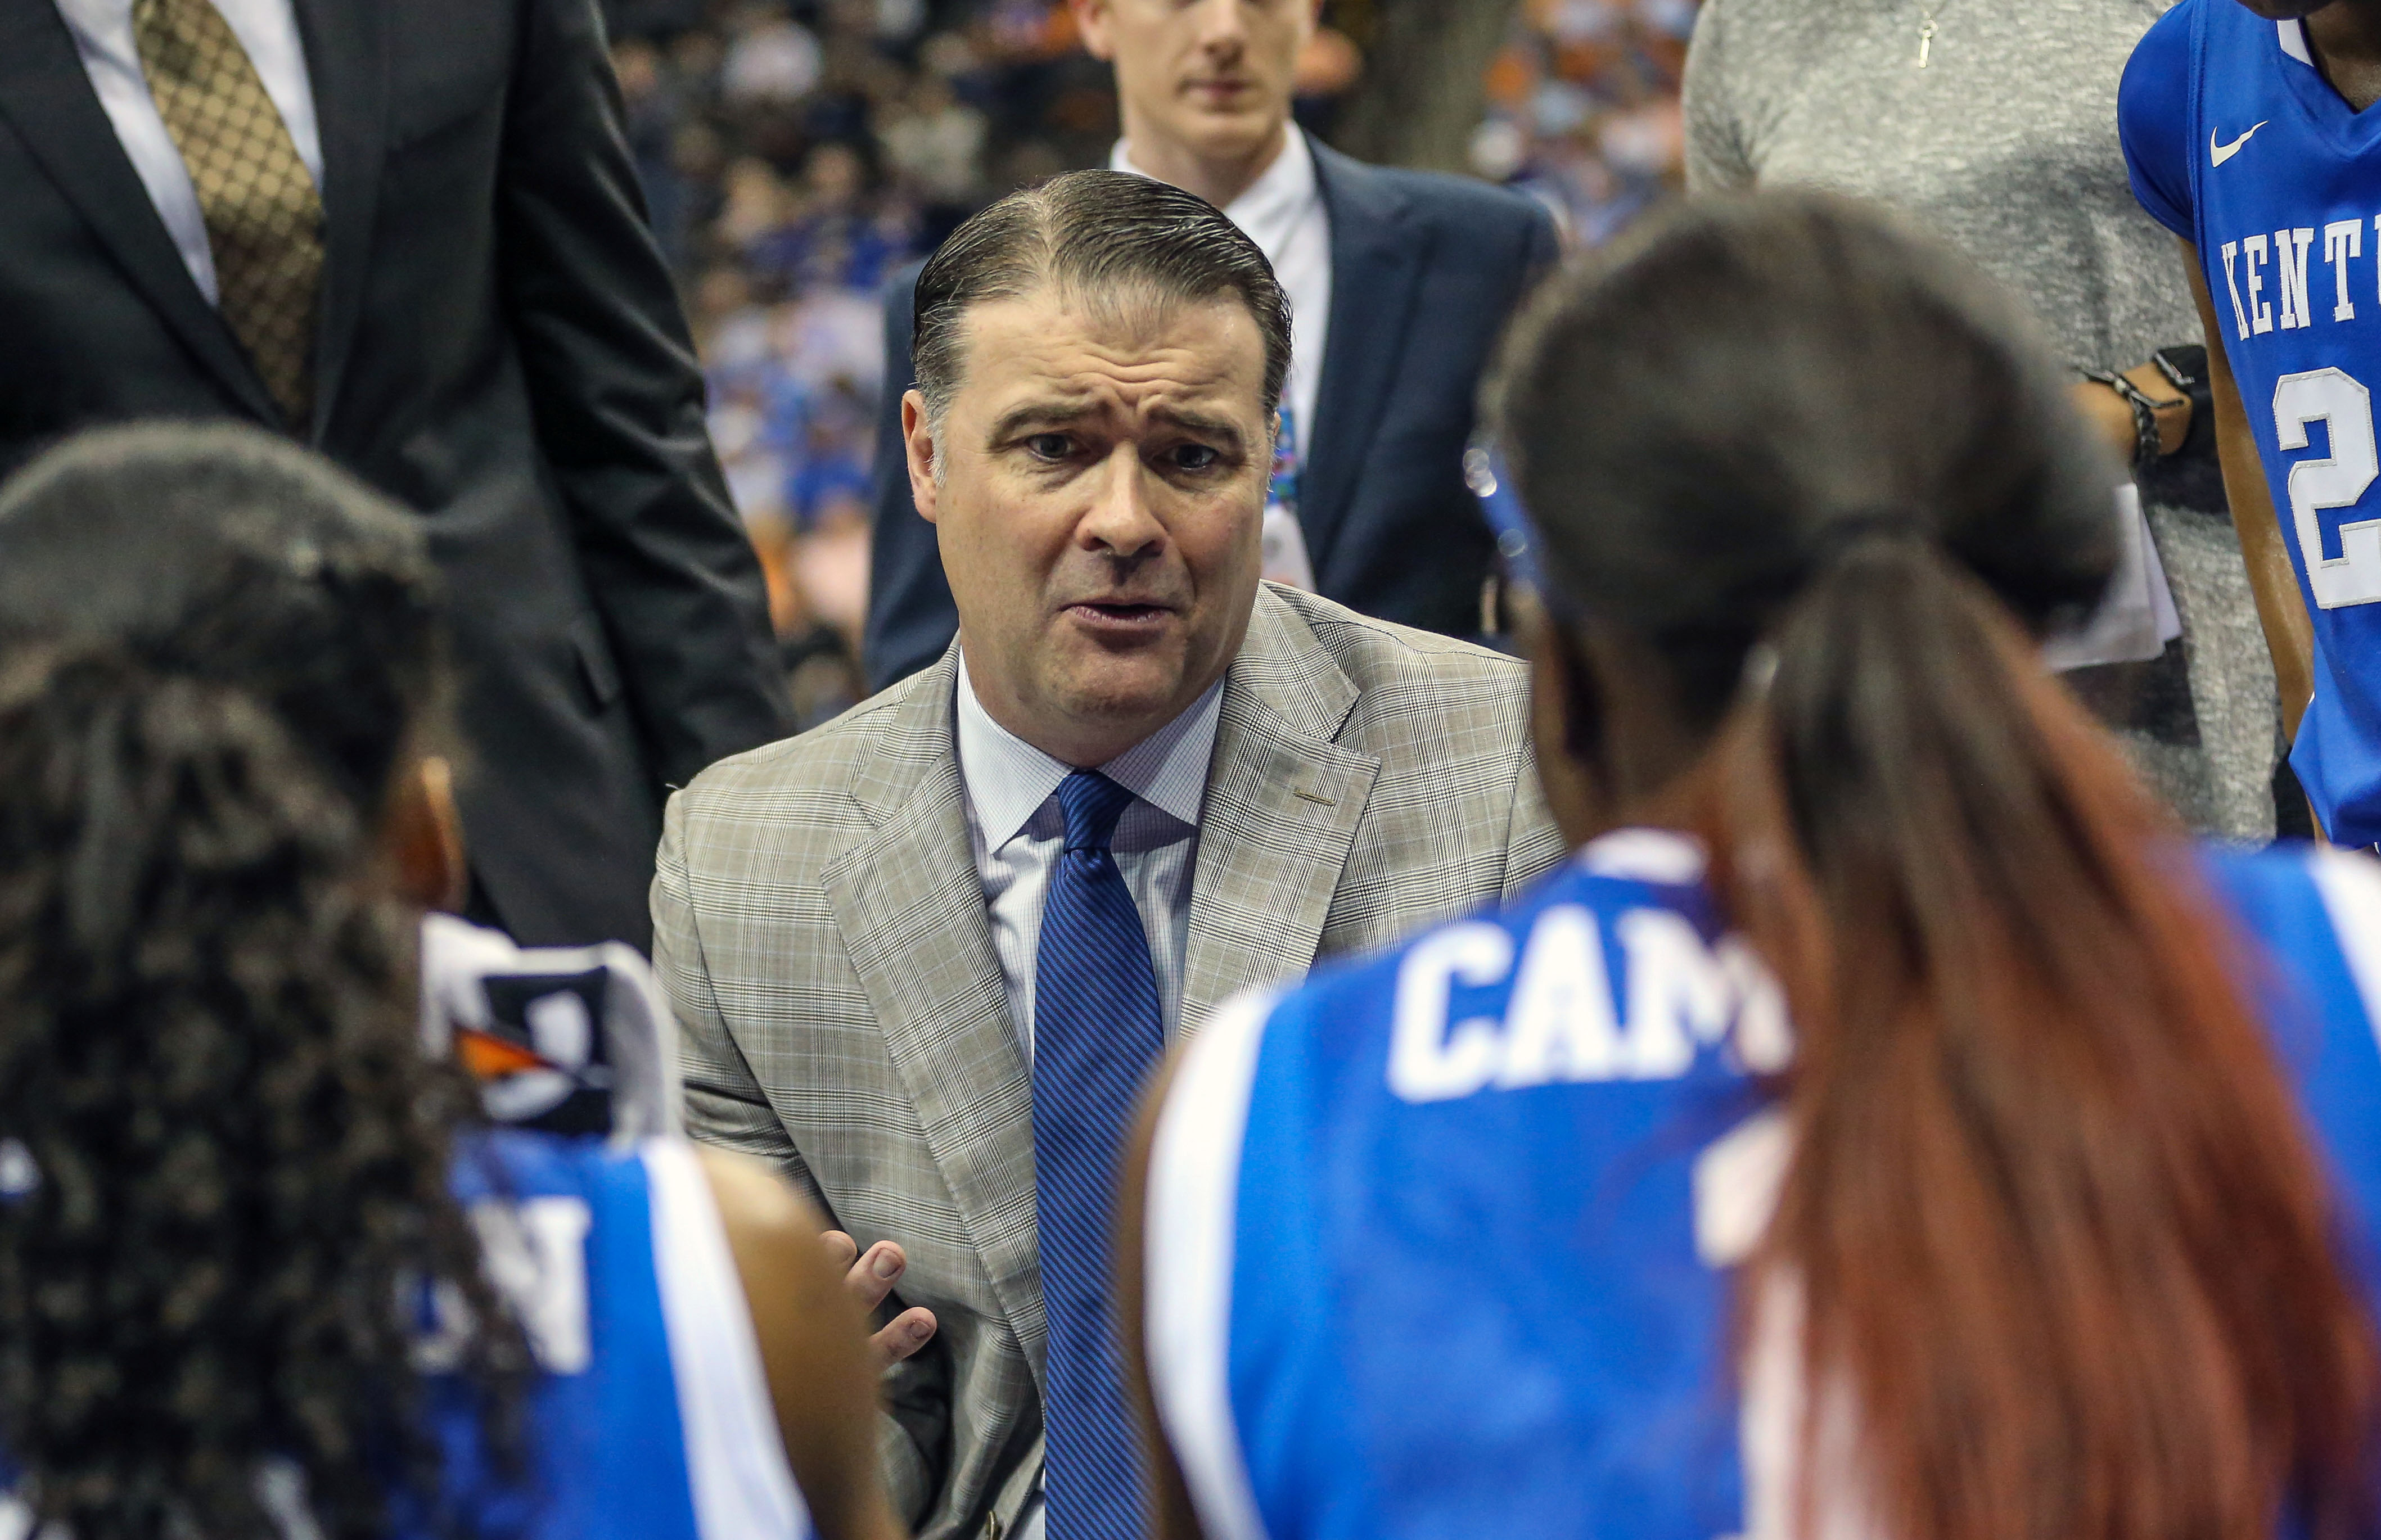 FILe - In this March 4, 2016 file photo, Kentucky head coach Matthew Mitchell speaks with his players during an NCAA college basketball game against Florida in the Southeastern Conference women's tournament in Jacksonville, Fla. Kentucky coach Matthew Mit